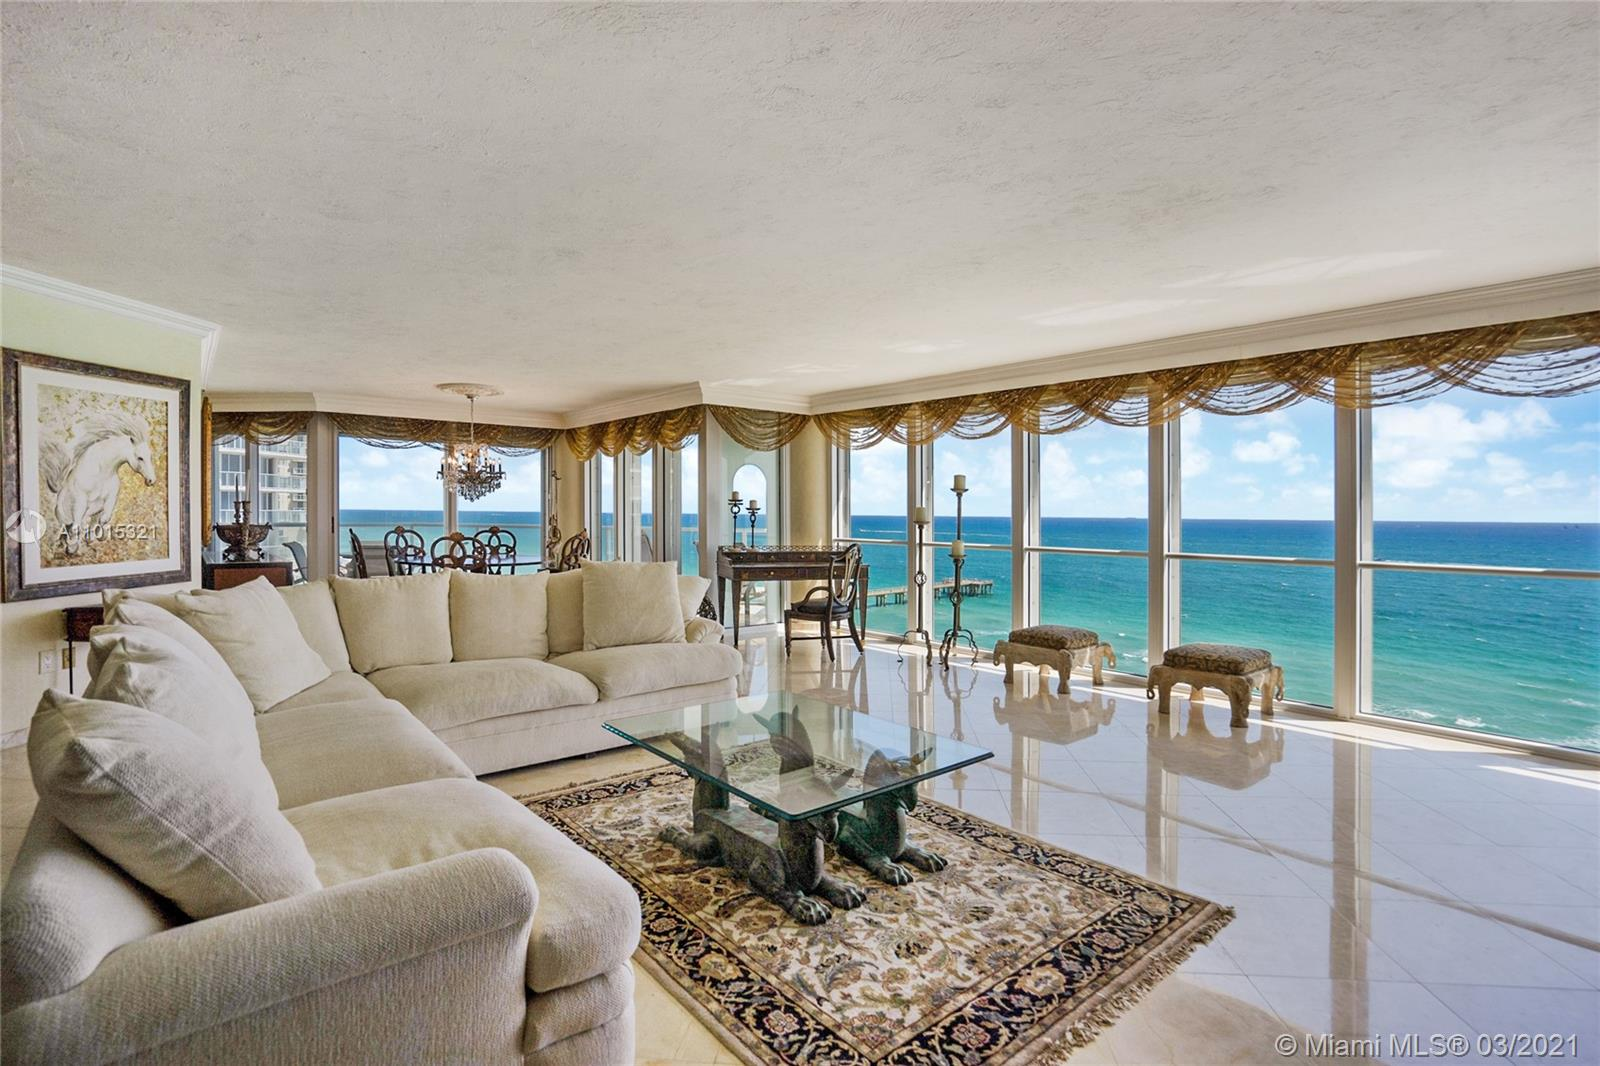 Spacious living/dining room with direct ocean views.